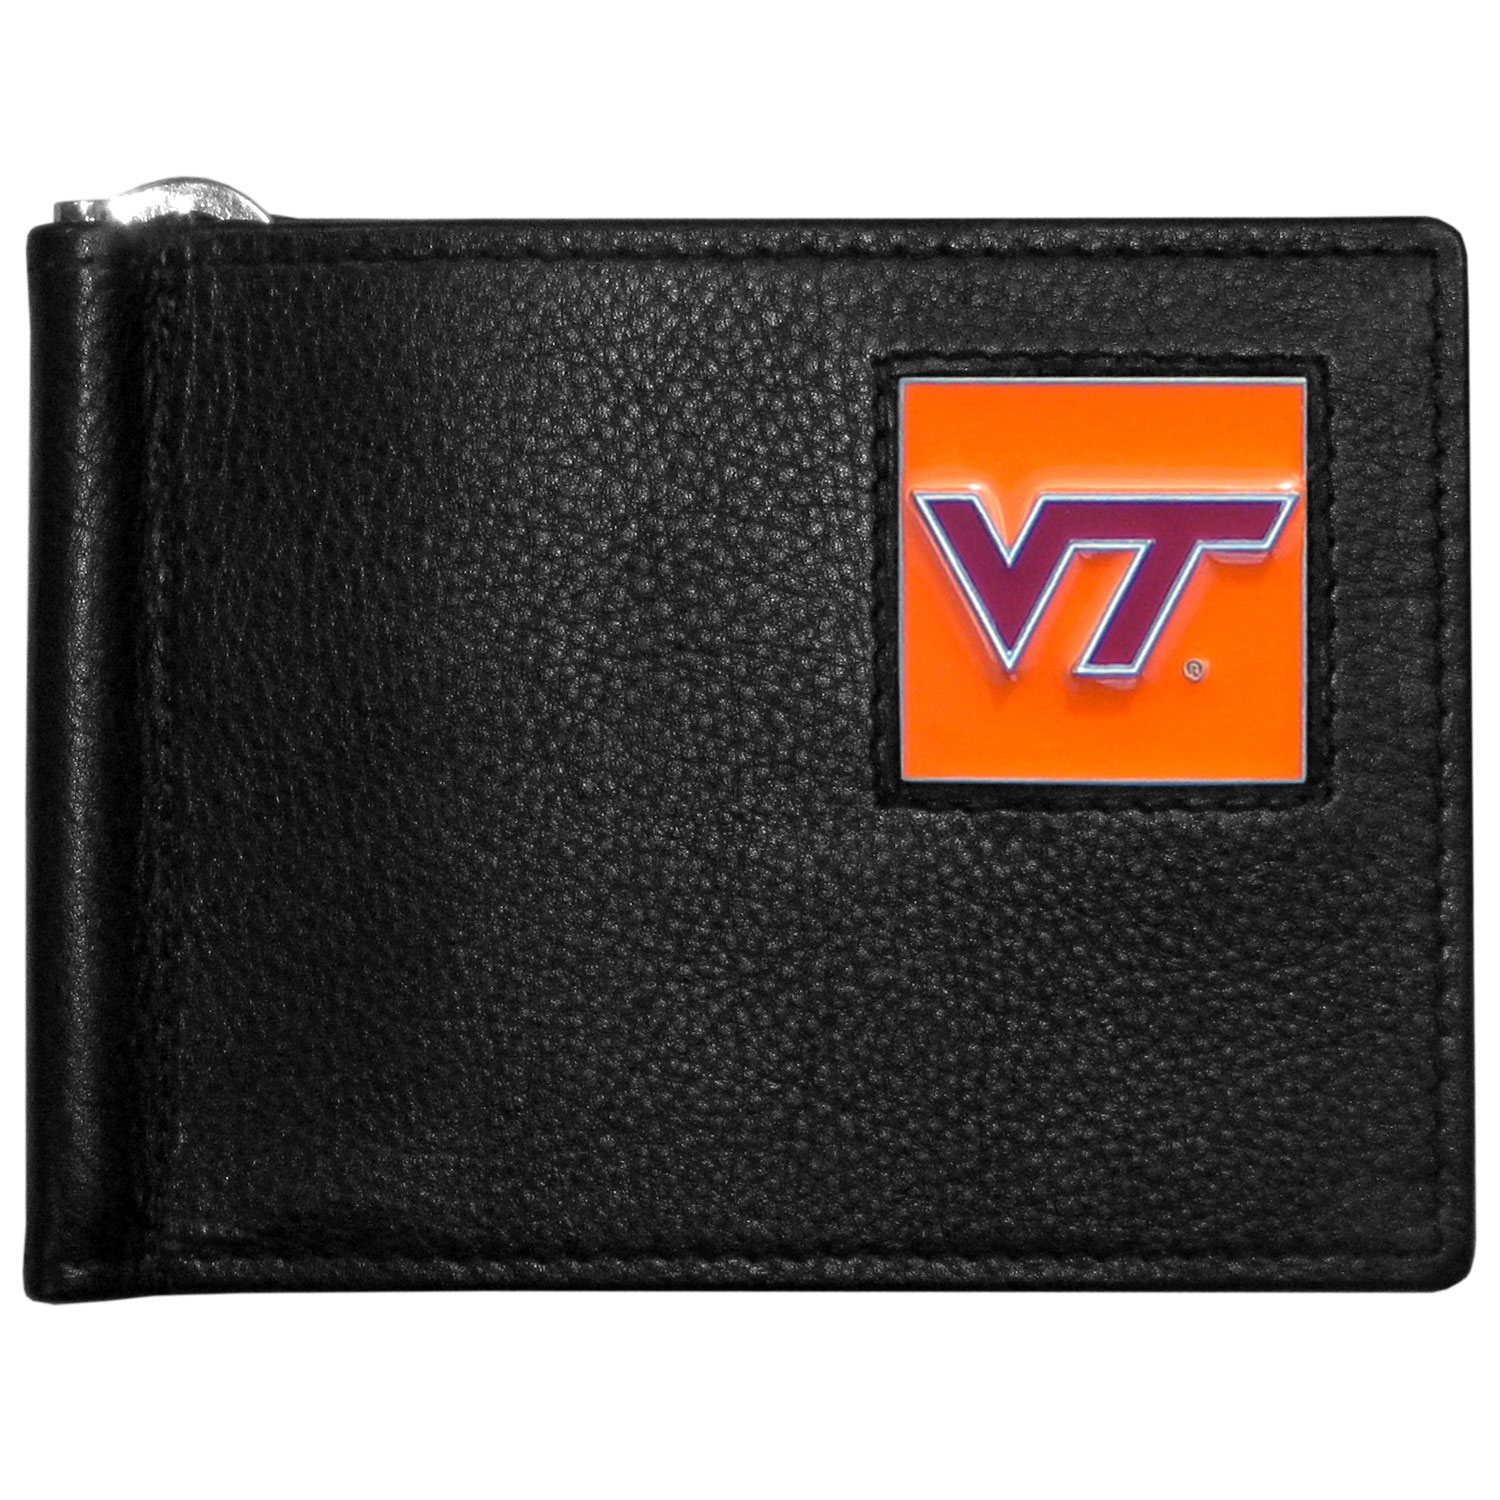 Virginia Tech Hokies Leather Bill Clip Wallet - This cool new style wallet features an inner, metal bill clip that lips up for easy access. The super slim wallet holds tons of stuff with ample pockets, credit card slots & windowed ID slot.  The wallet is made of genuine fine grain leather and it finished with a metal Virginia Tech Hokies emblem. The wallet is shipped in gift box packaging.